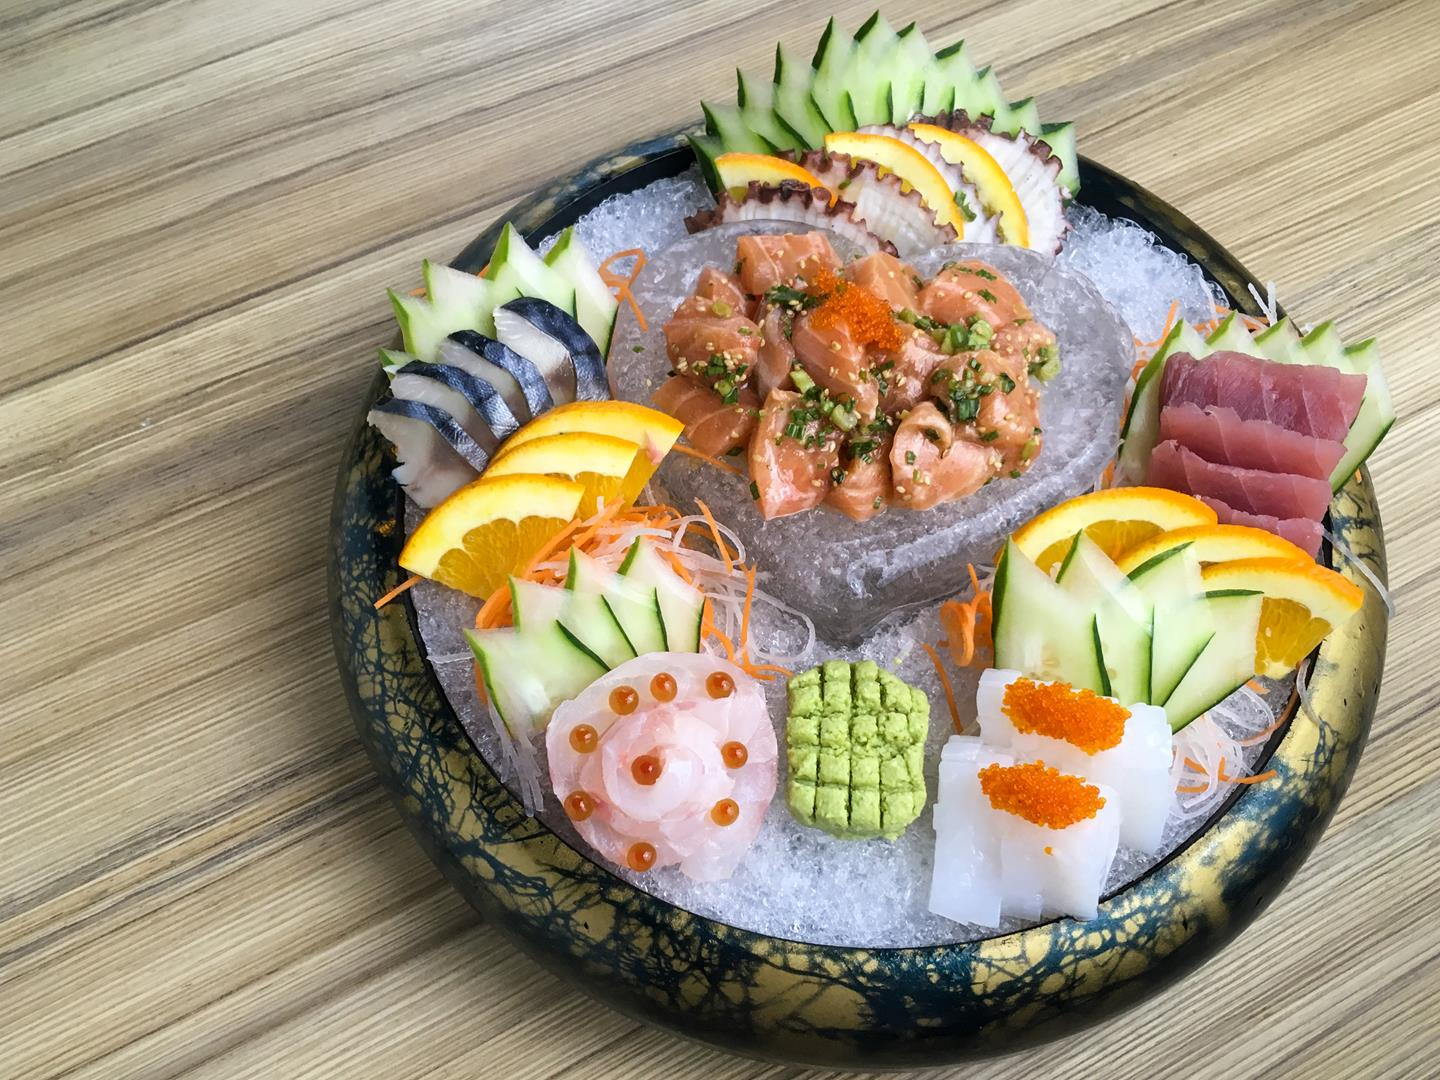 This ice-filled heart-shaped sashimi platter is filled with various morsels of succulent .seafood.